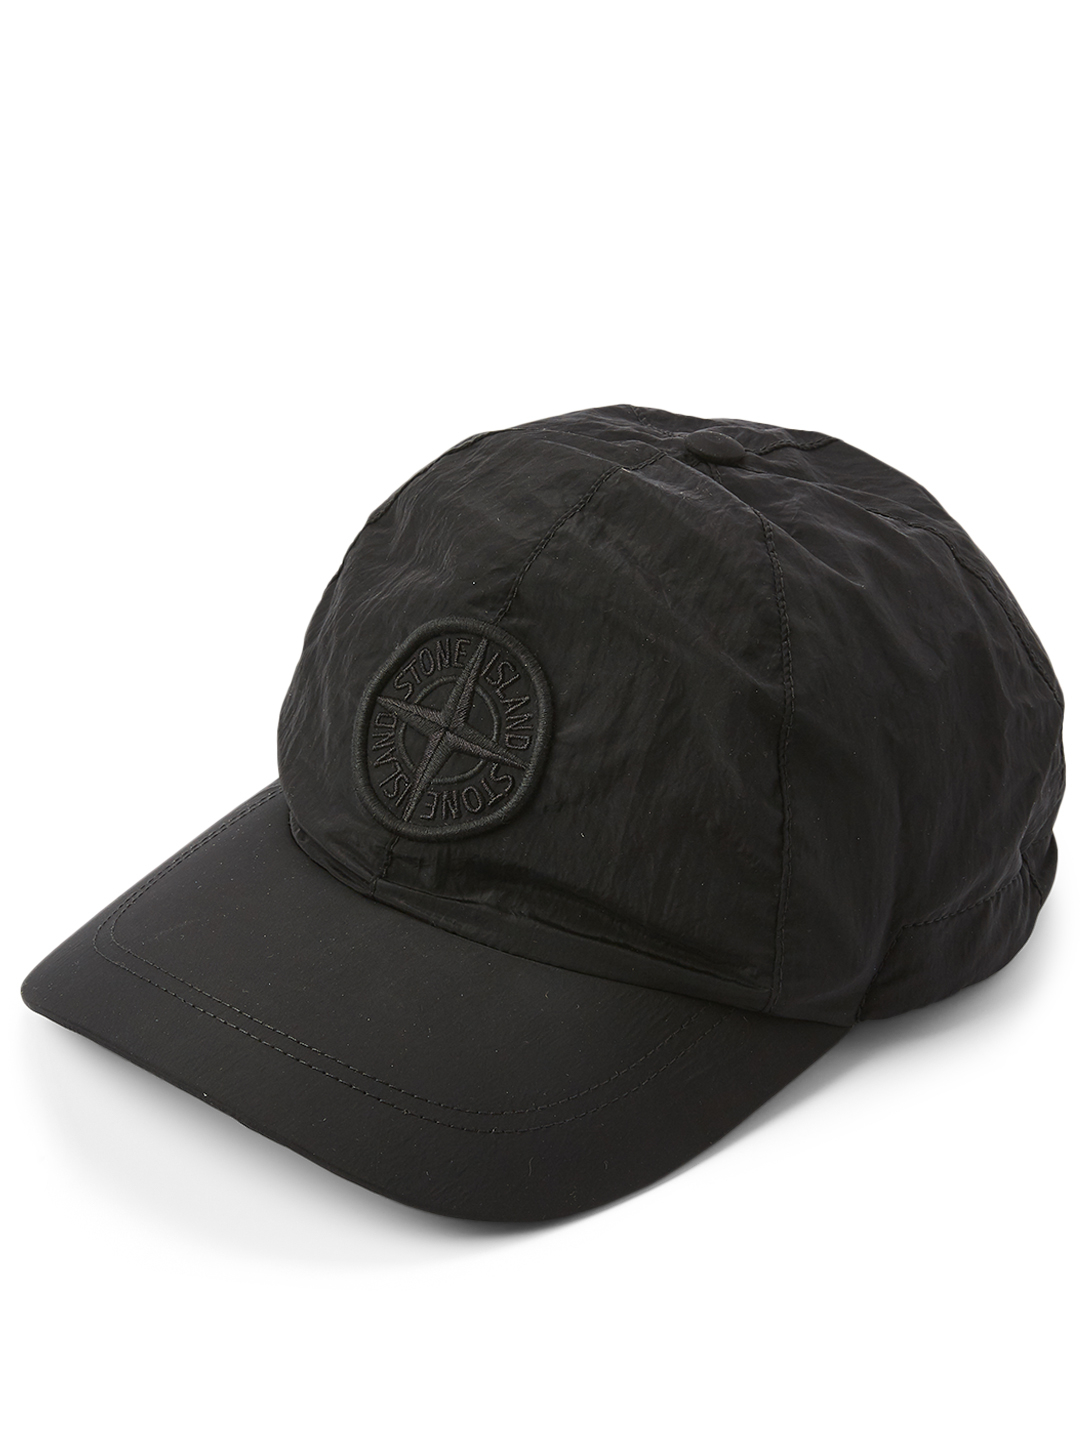 STONE ISLAND Ball Cap With Logo Men's Black